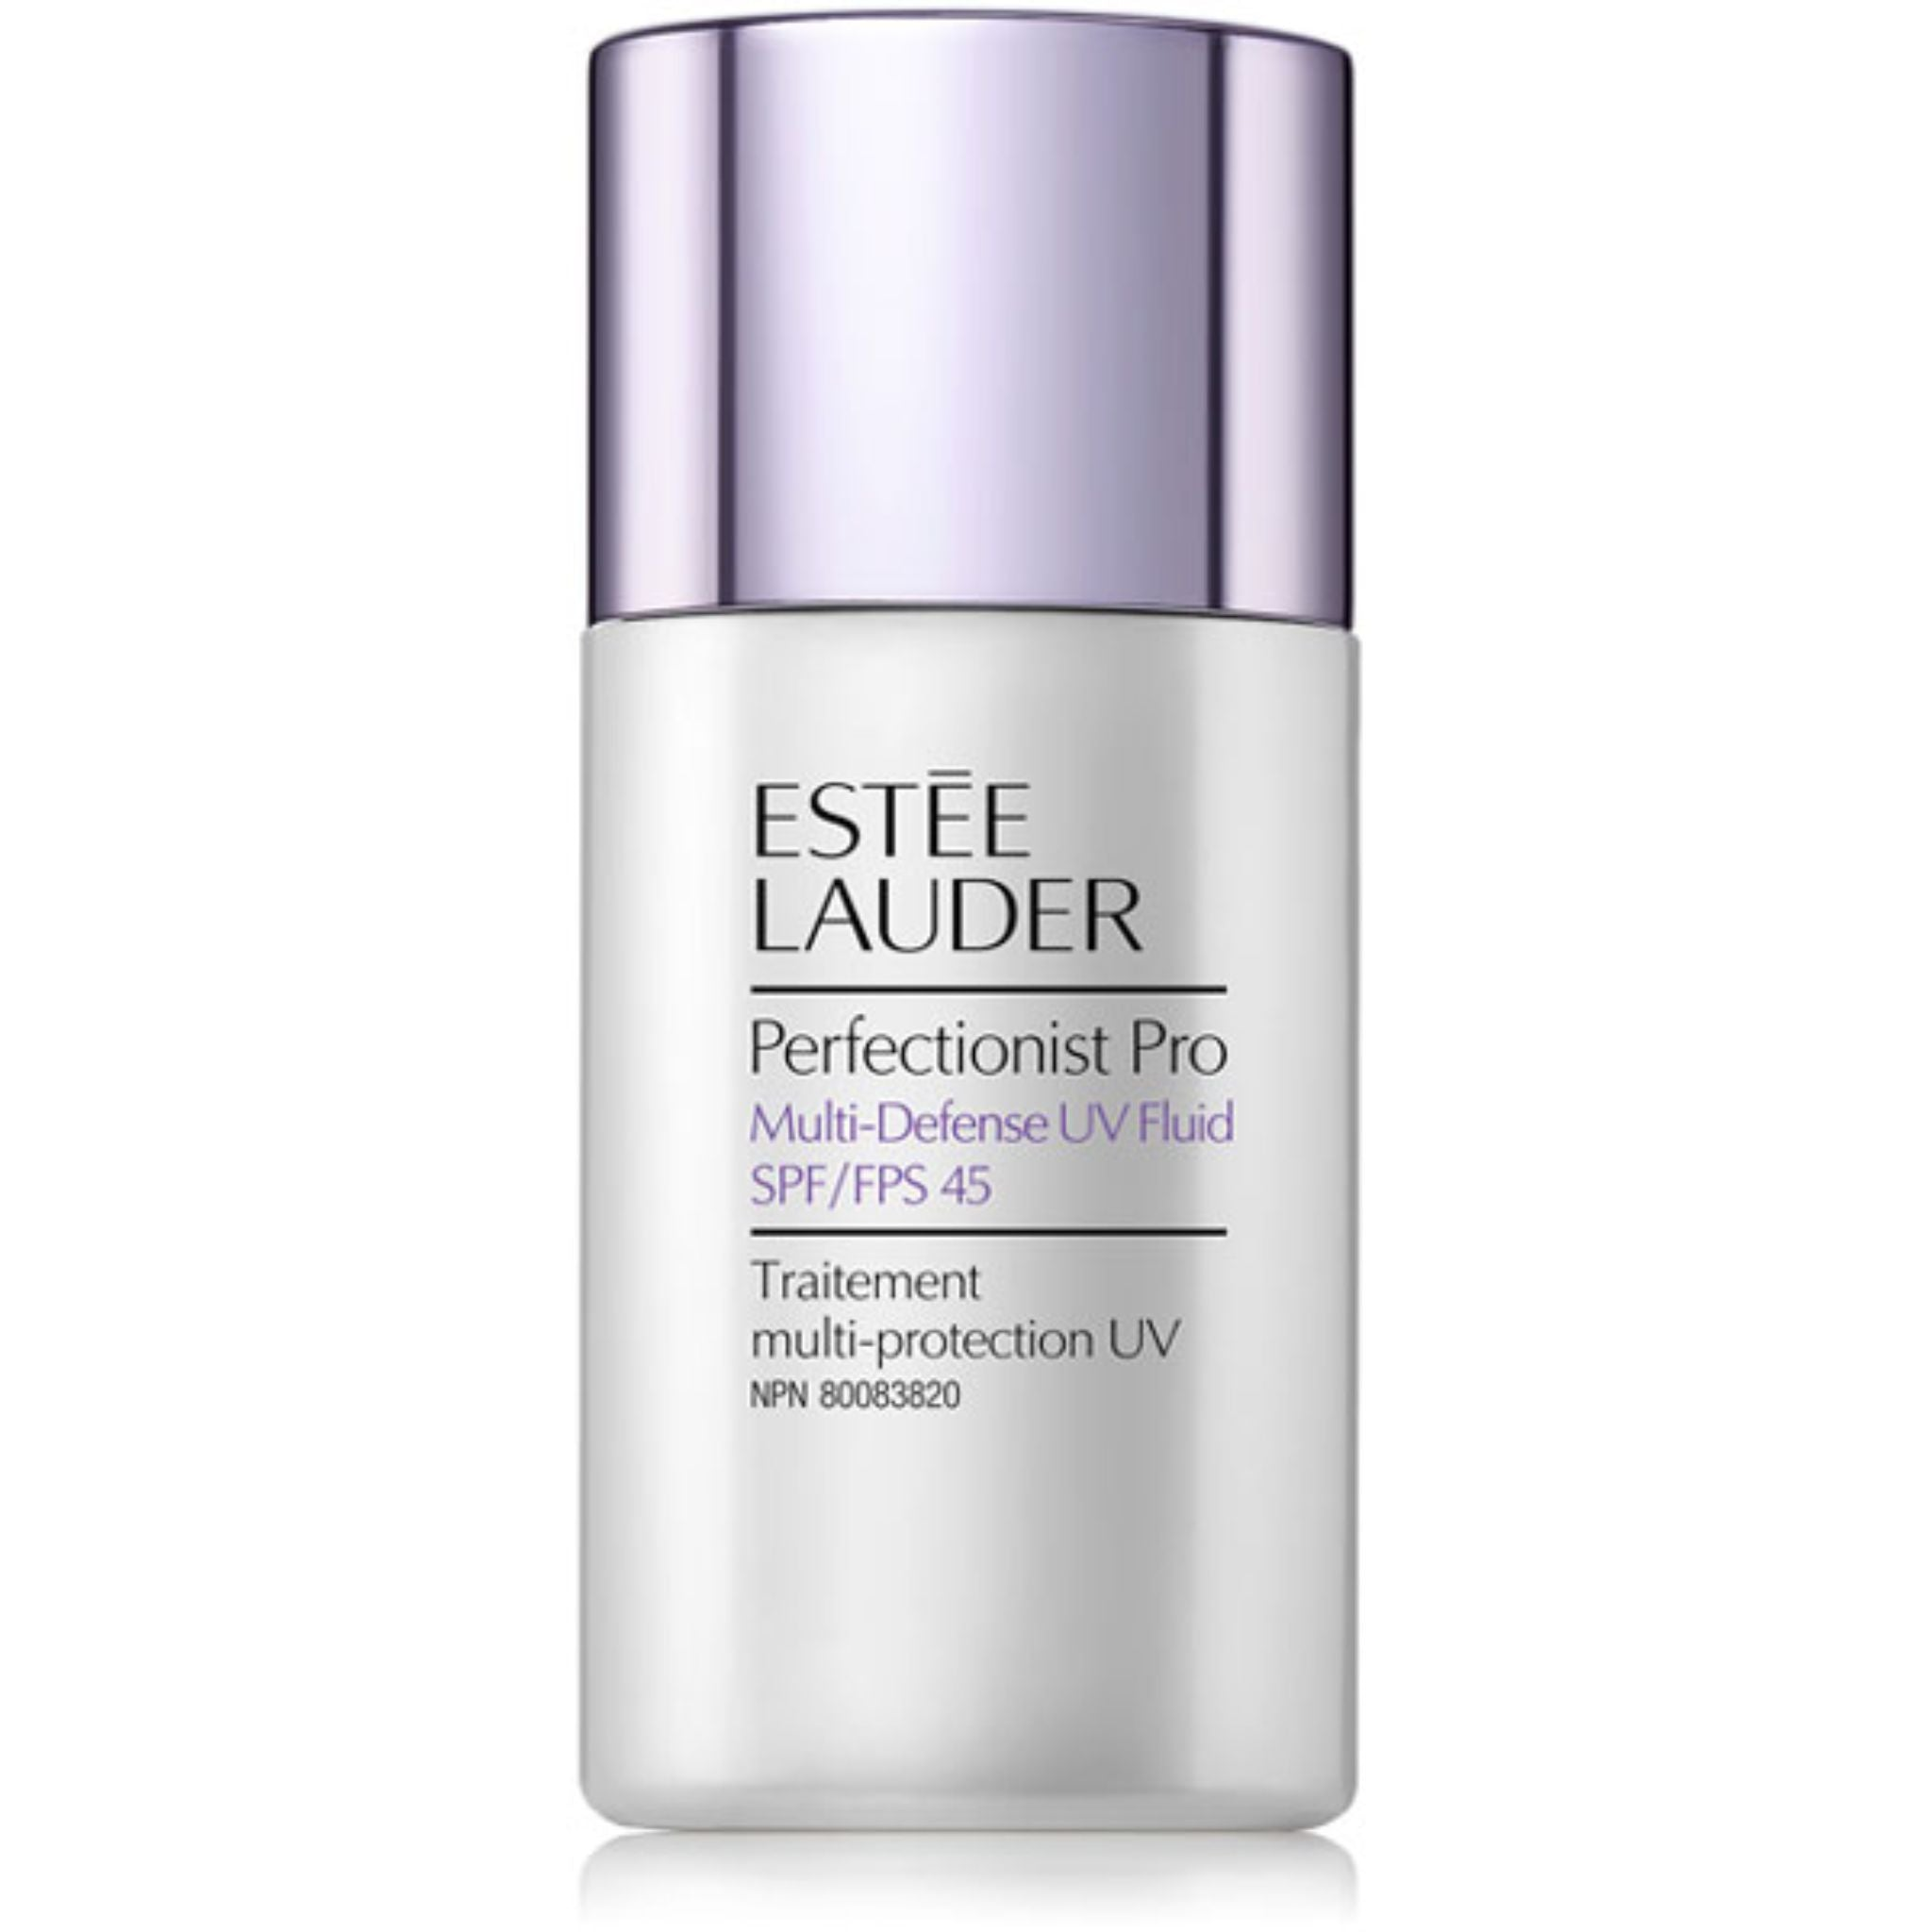 Estée Lauder Perfectionist Pro Multi-Defencse UV Fluid SPF 45 PA++++ 30ml